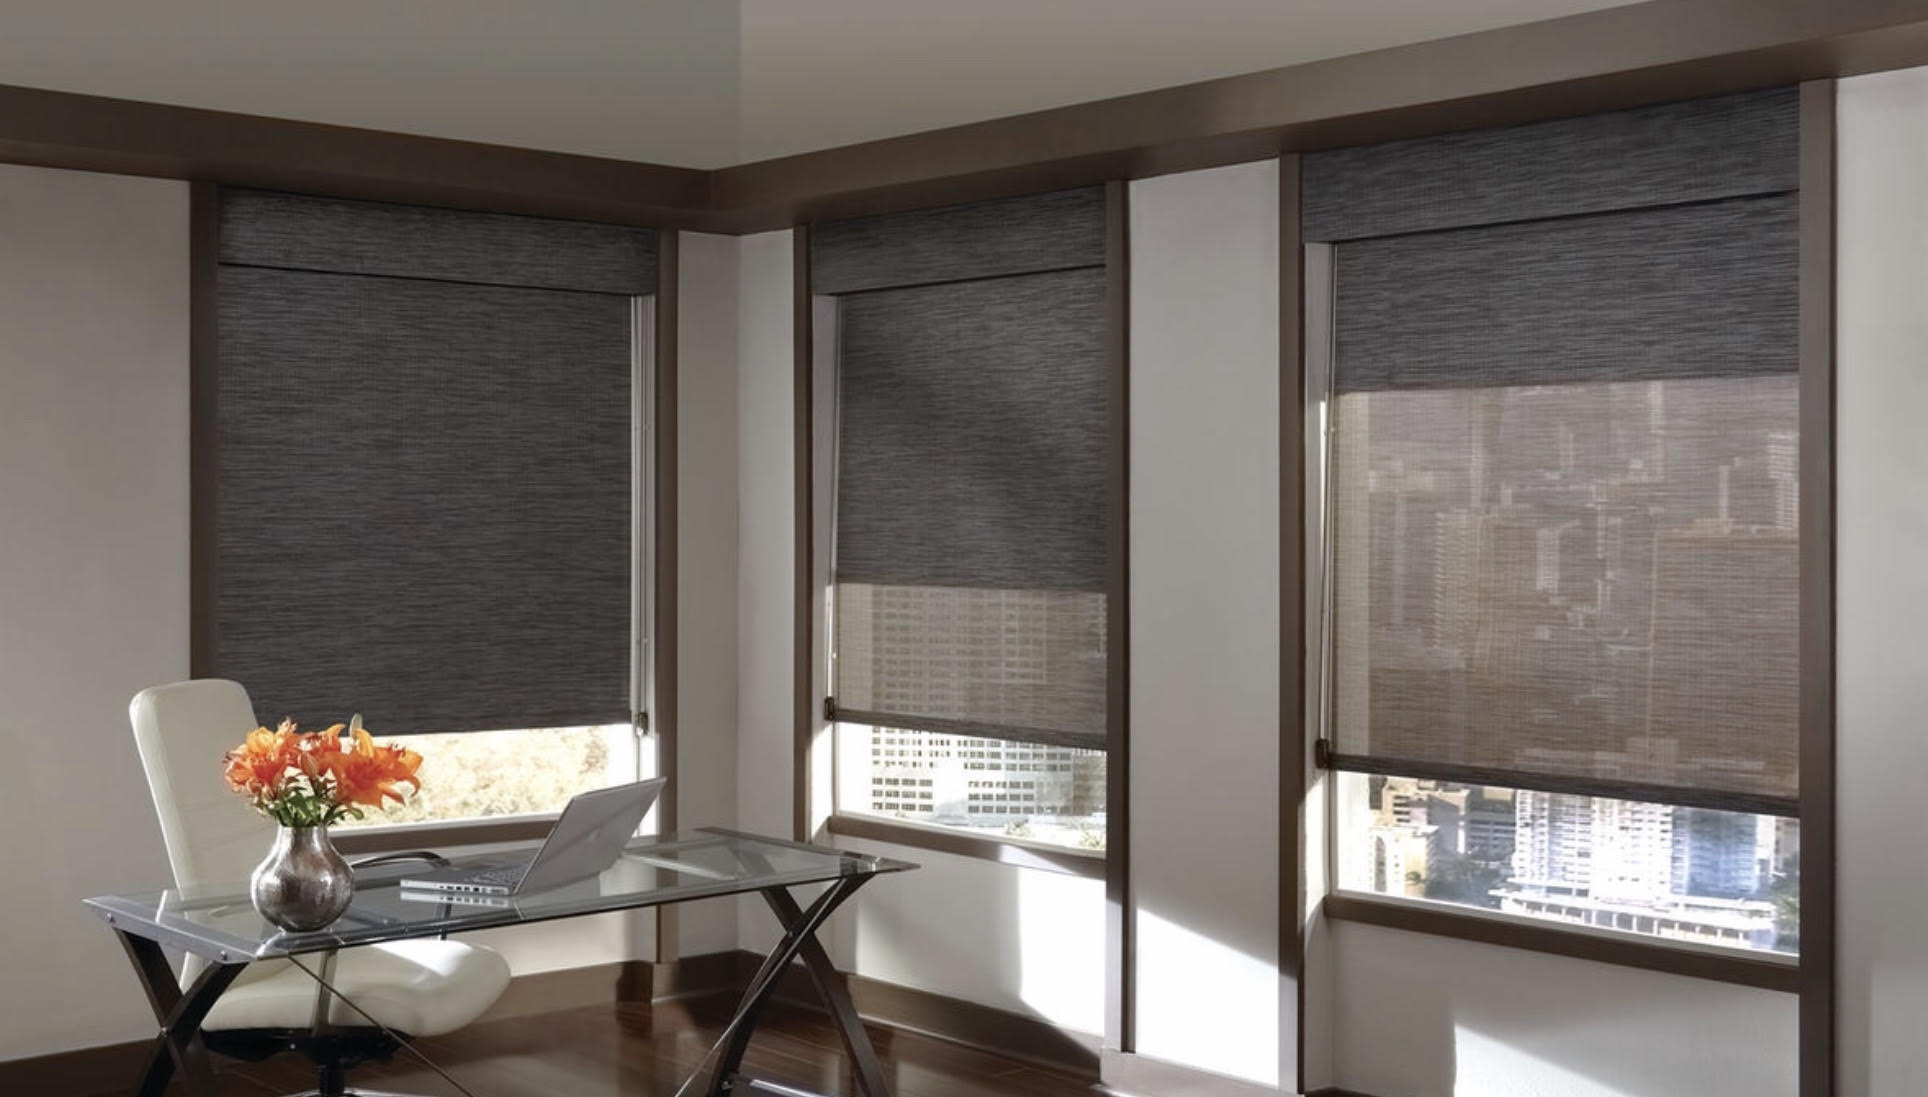 Dual Roller Shades with Fabric Wrapped Valance